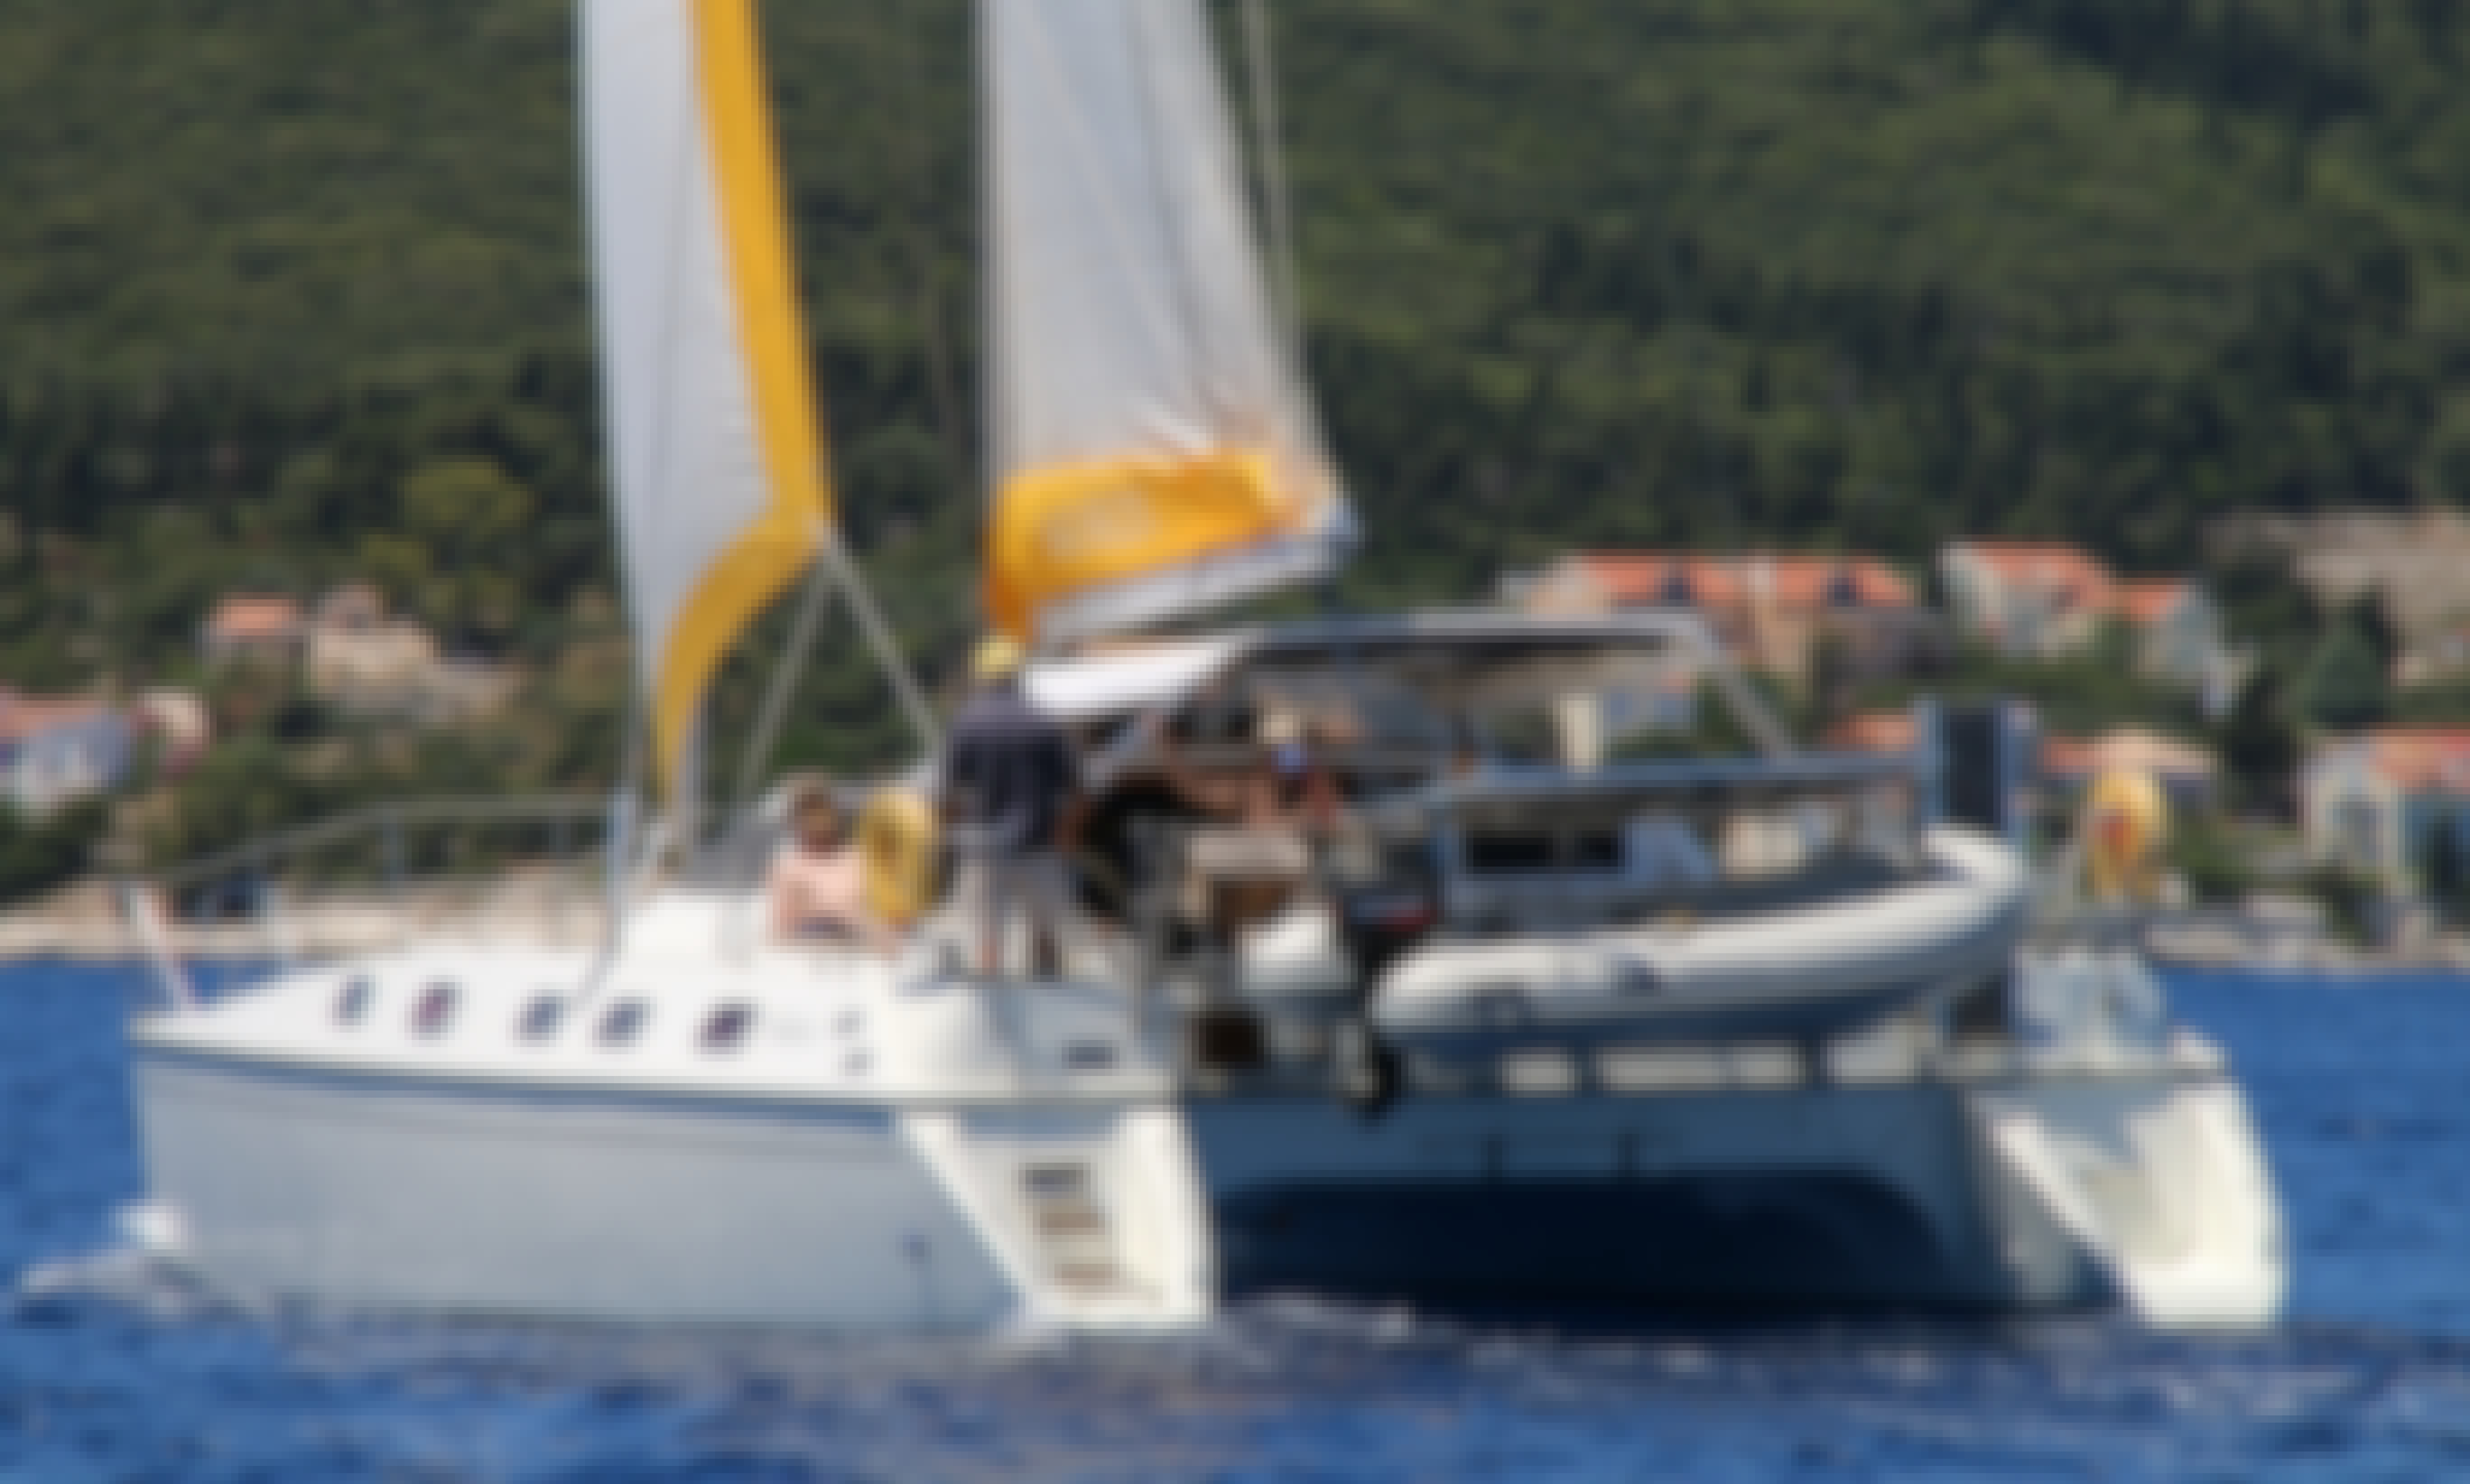 Relax on a Catamaran around Ionian Islands with skipper+crew/cook onboard - Flexibile dates